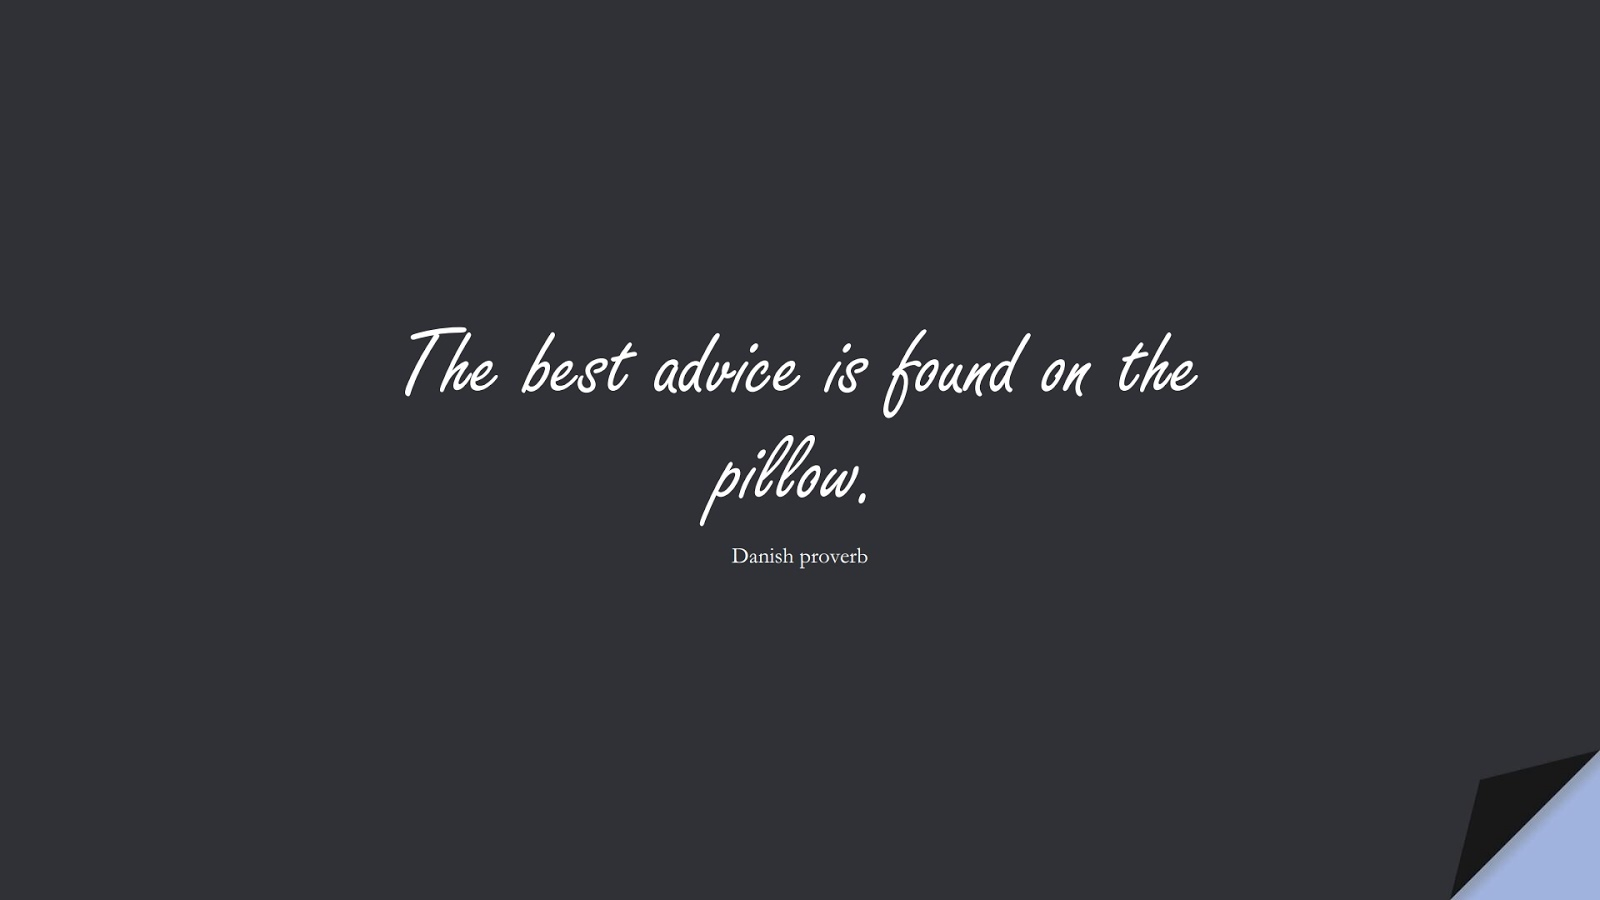 The best advice is found on the pillow. (Danish proverb);  #HealthQuotes